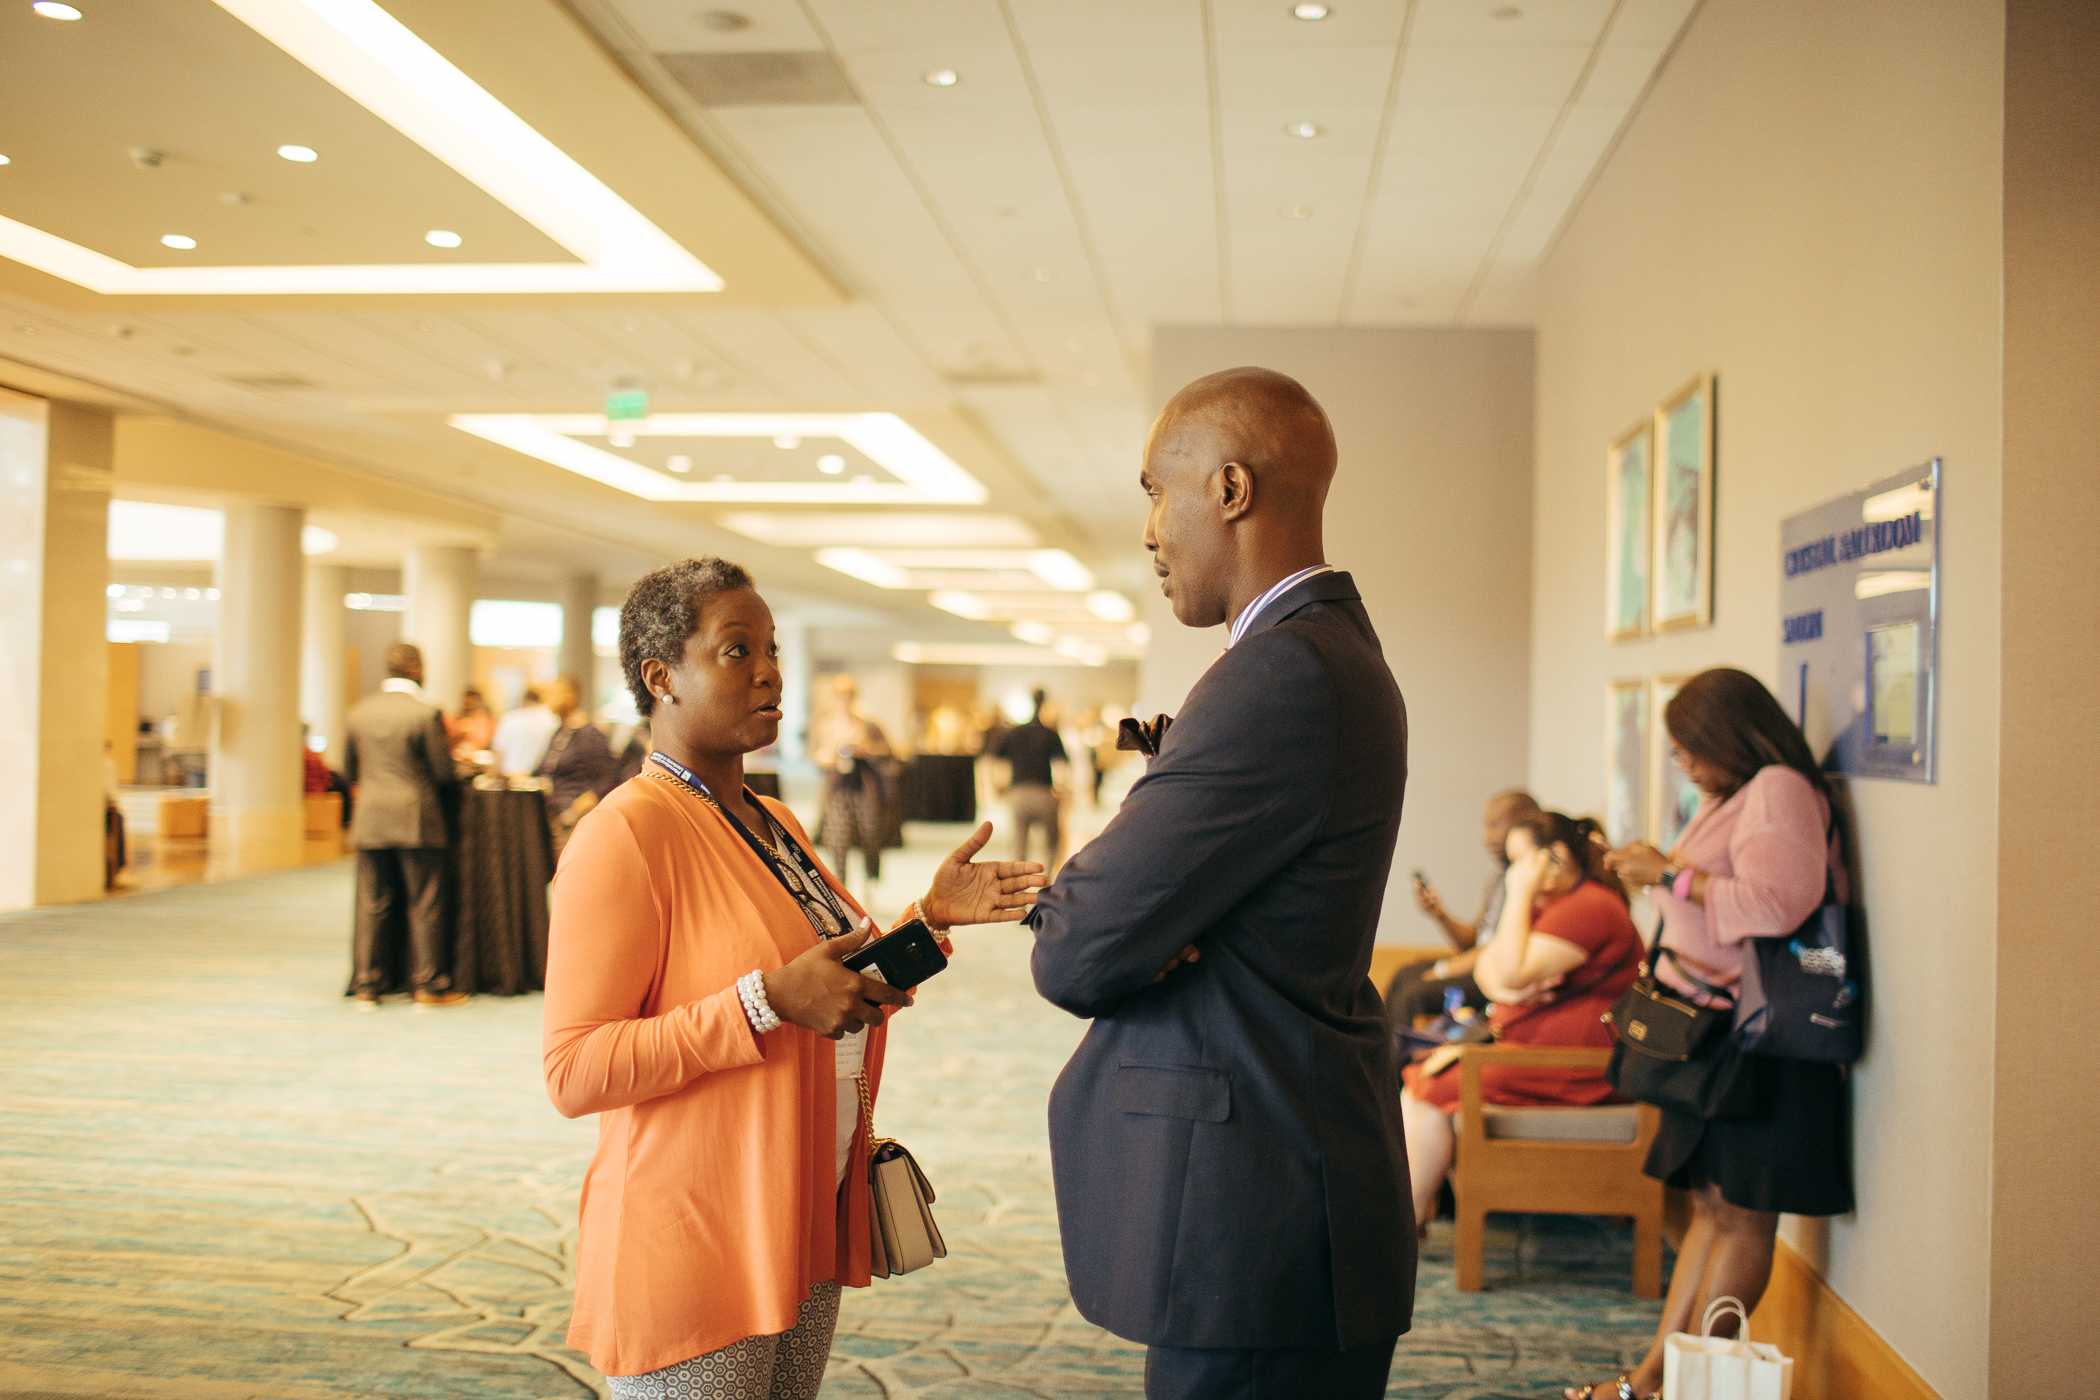 live event commercial photography brand storytelling for education florida conference photographer ©2018abigailbobophotography-115.jpg